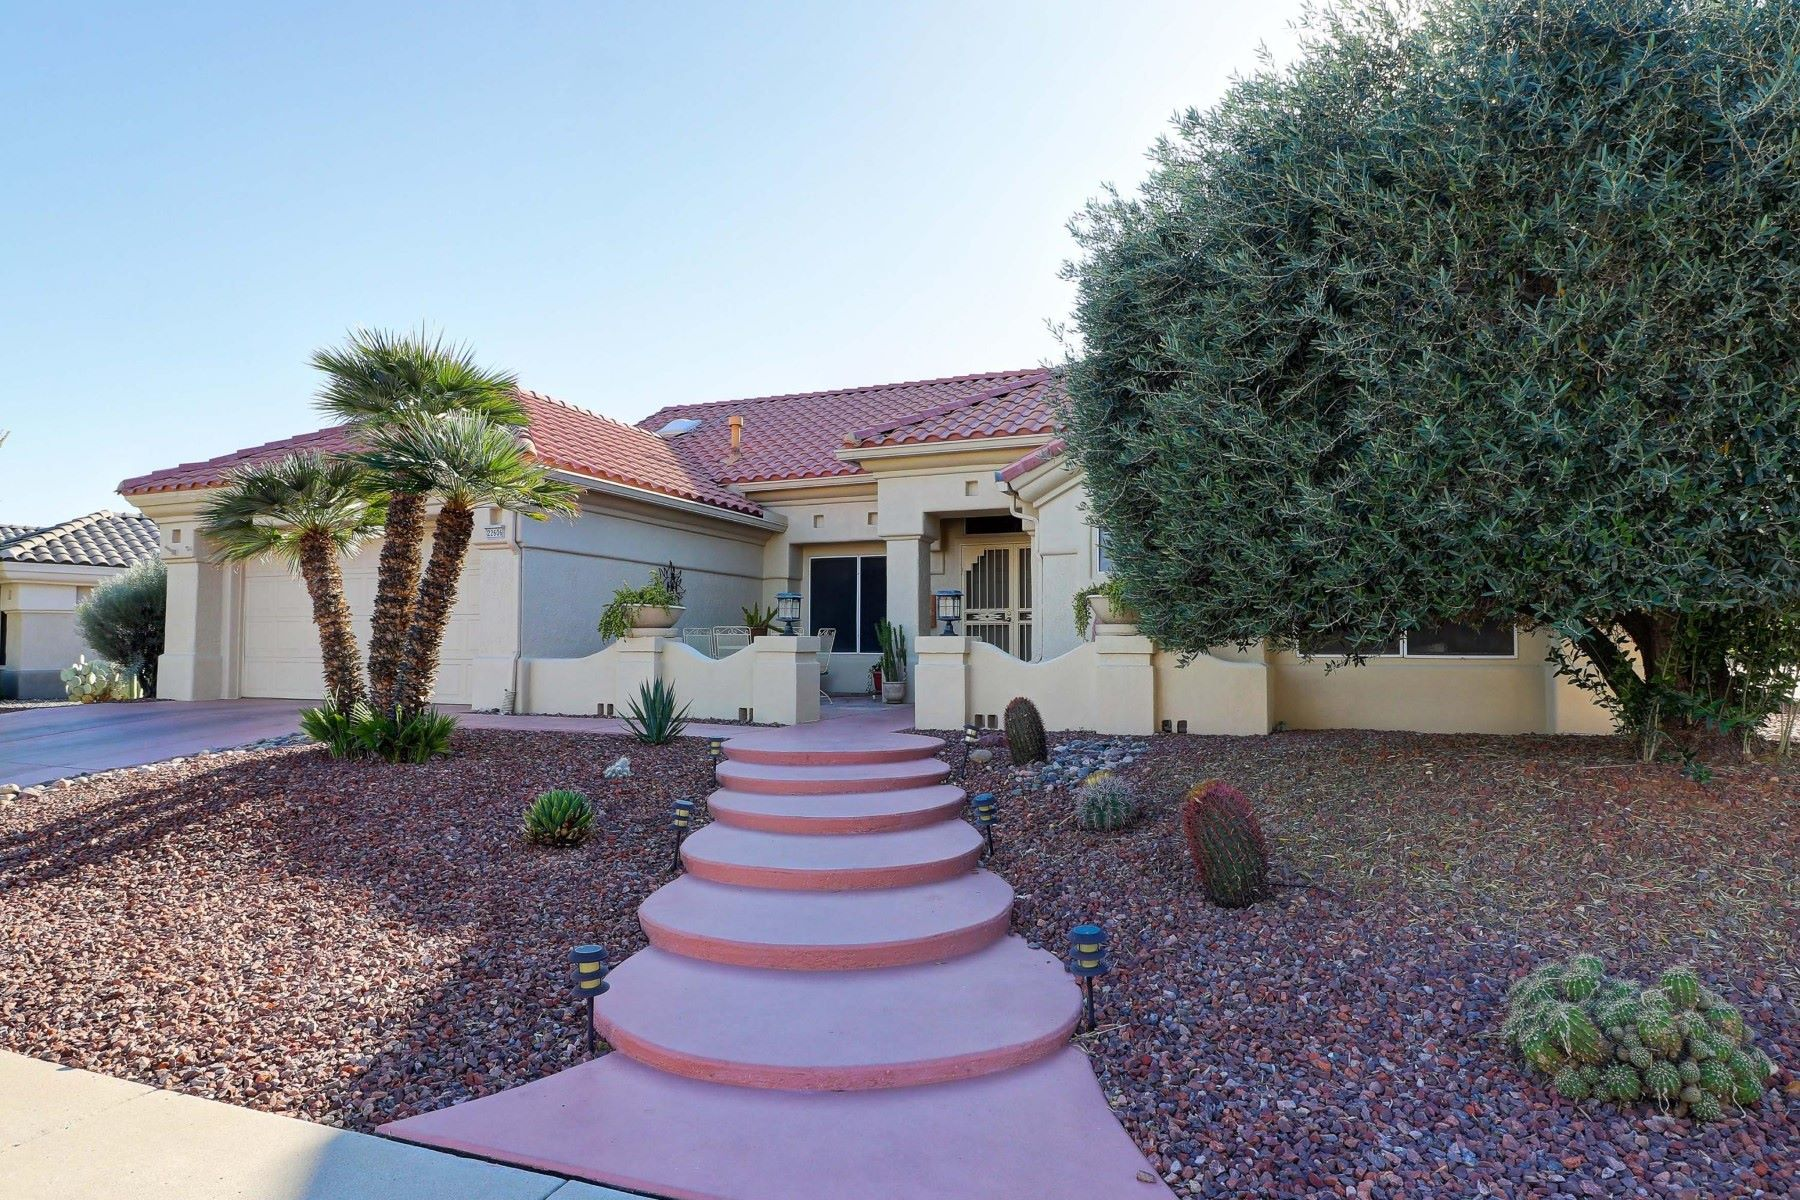 Single Family Homes for Active at Sun City West 22606 N Robertson Drive Sun City West, Arizona 85375 United States